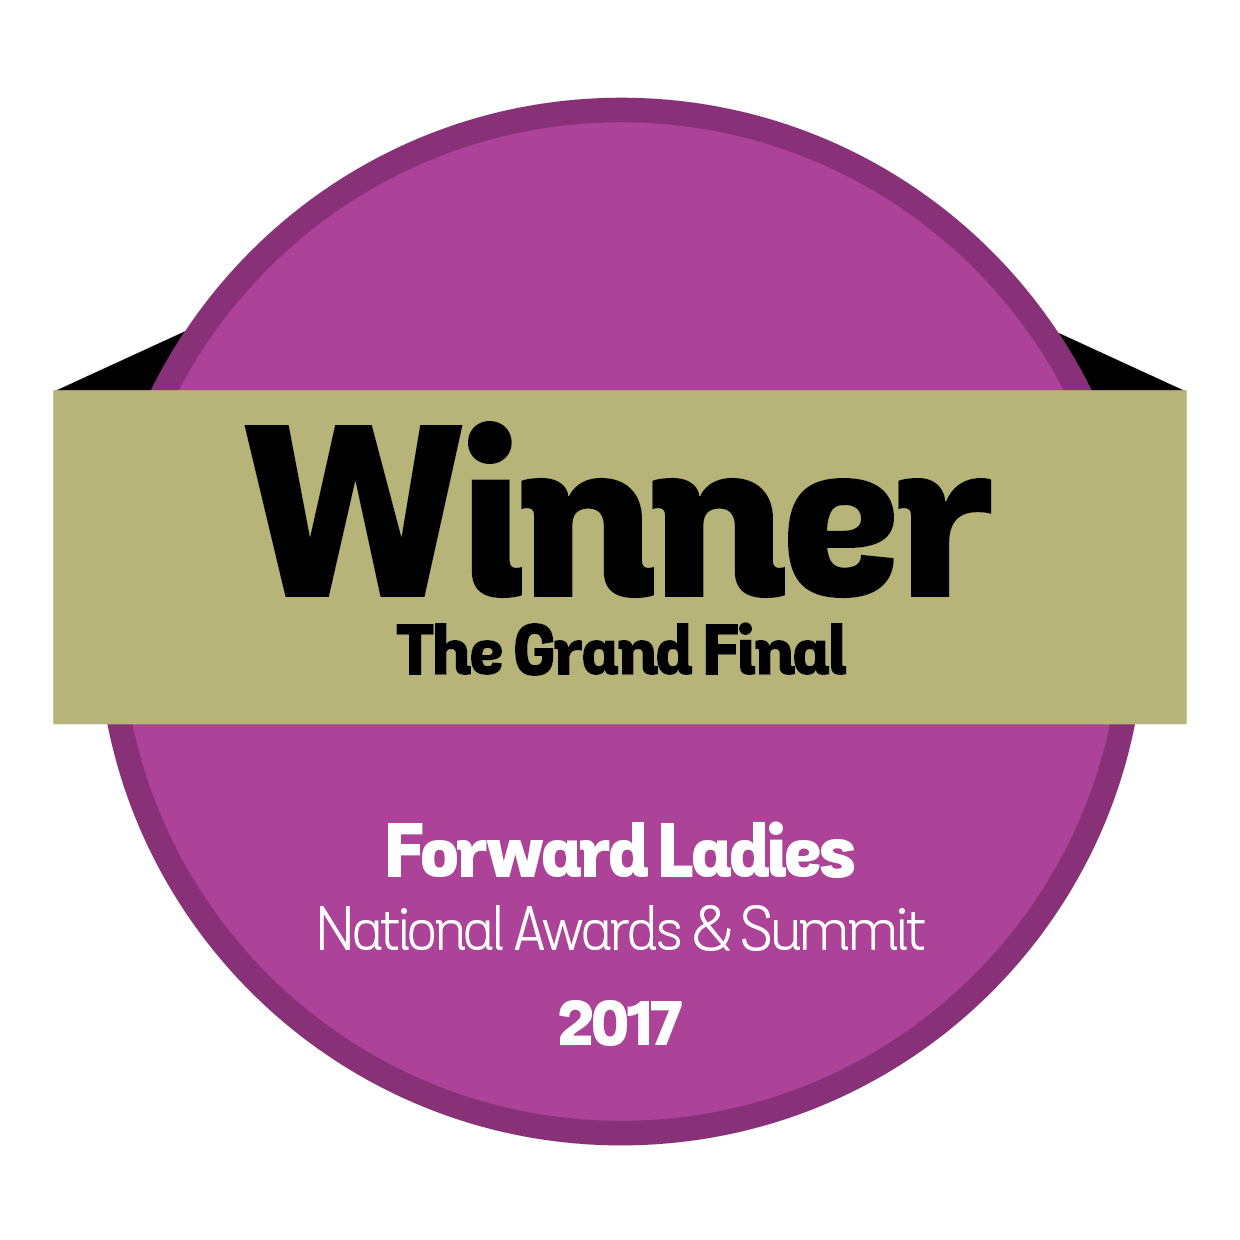 Forward-Ladies-Awards-Badges 2017 Winner